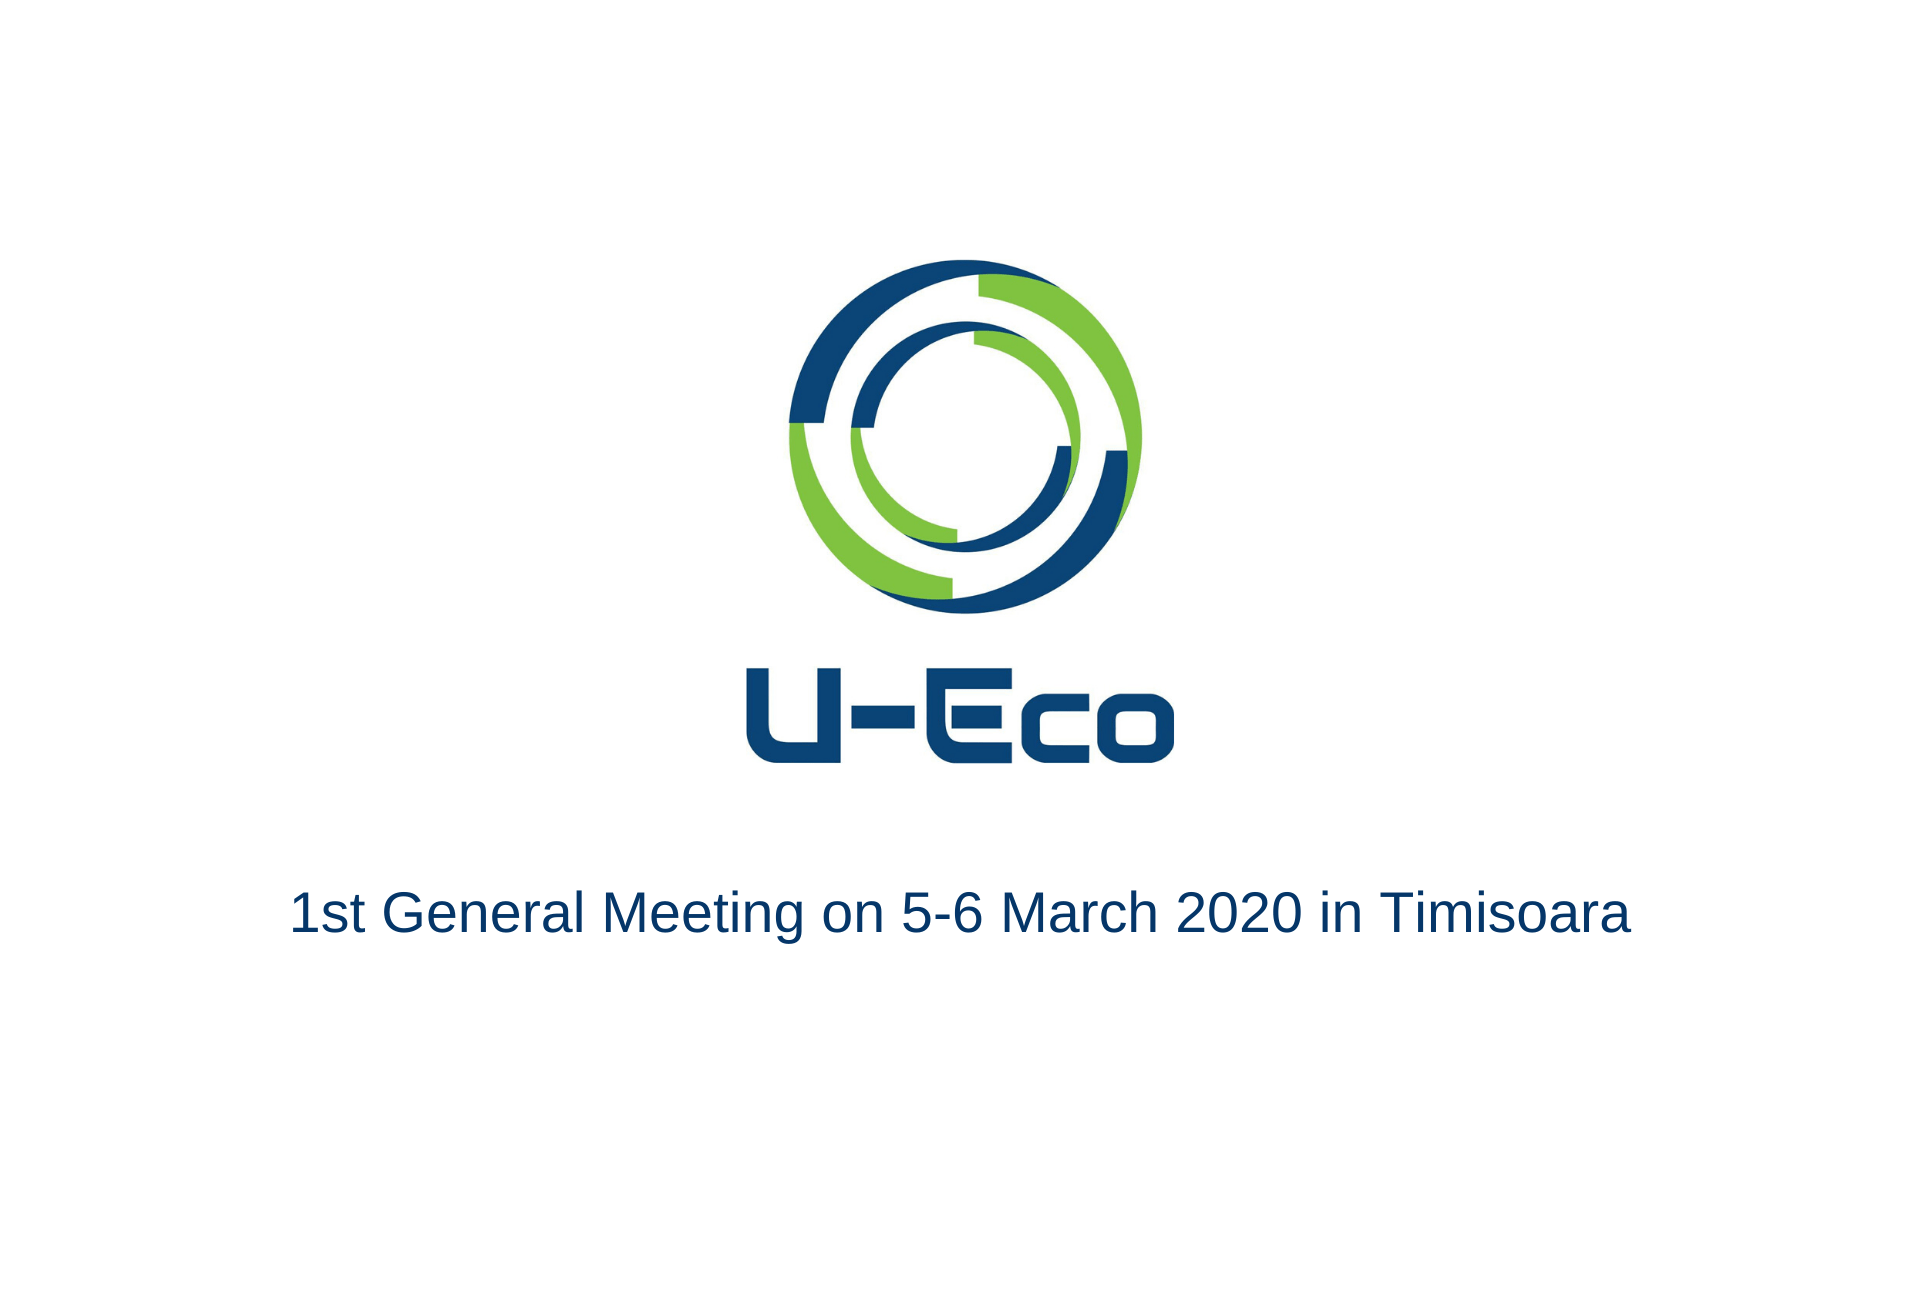 U-ECO General Meeting